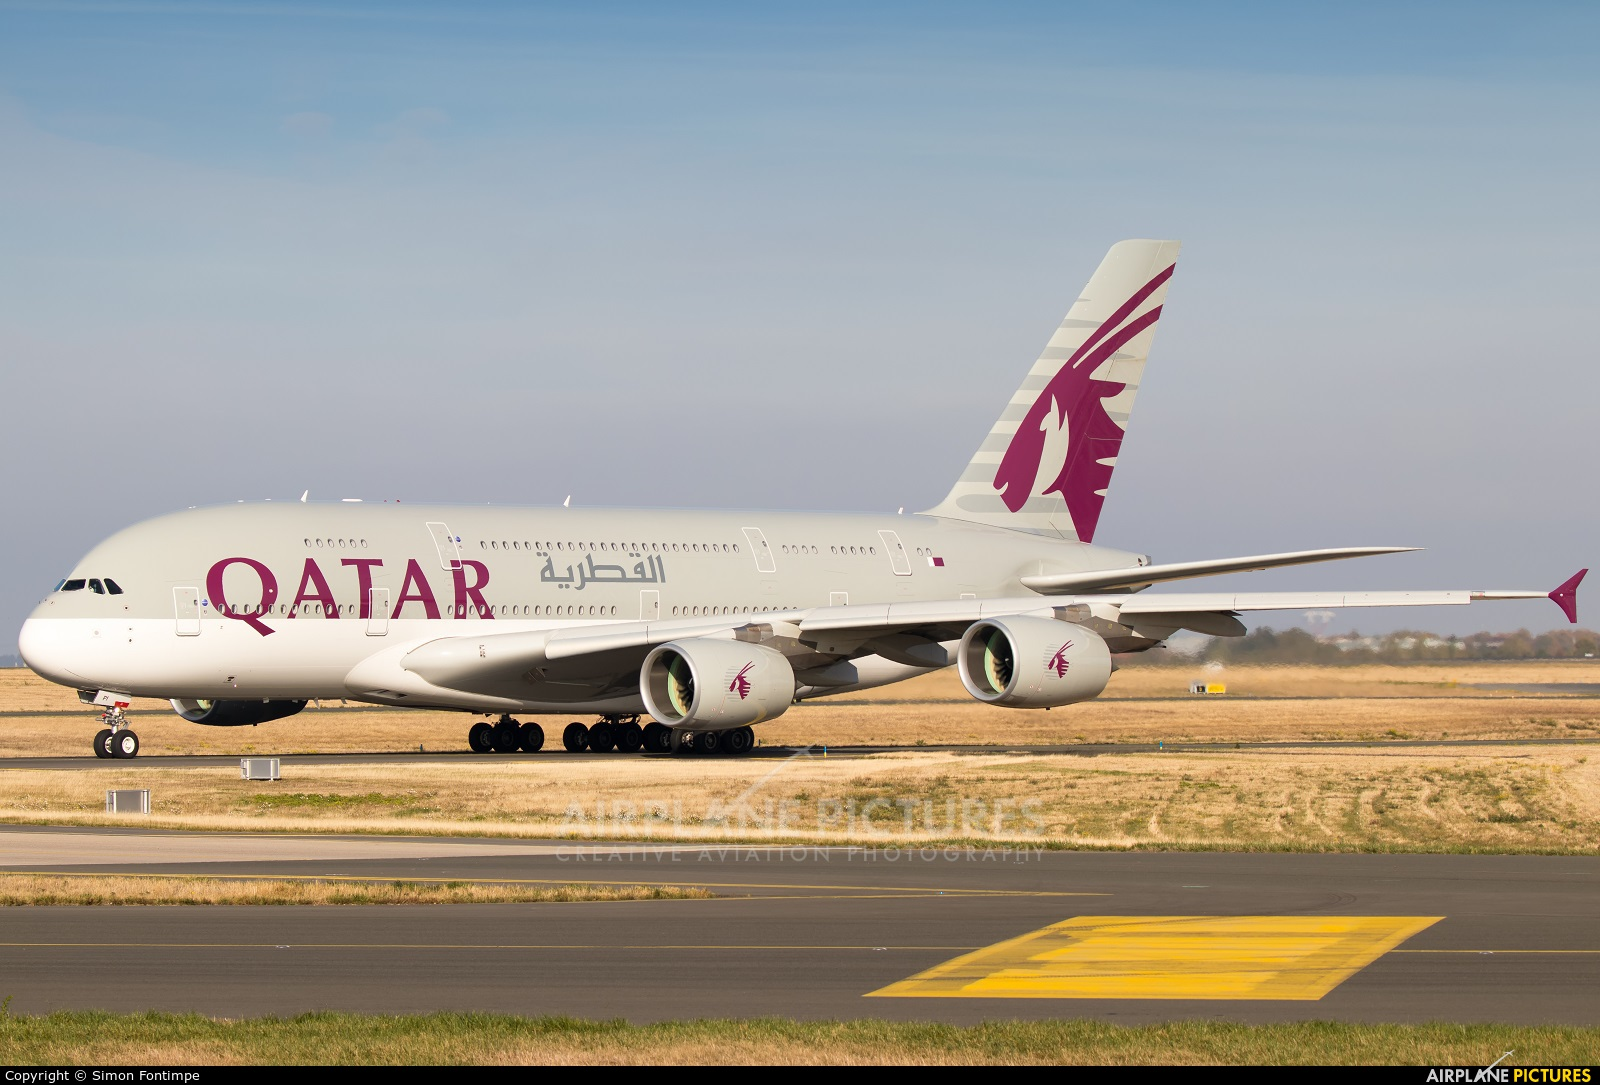 Qatar Airways A7-API aircraft at Paris - Charles de Gaulle